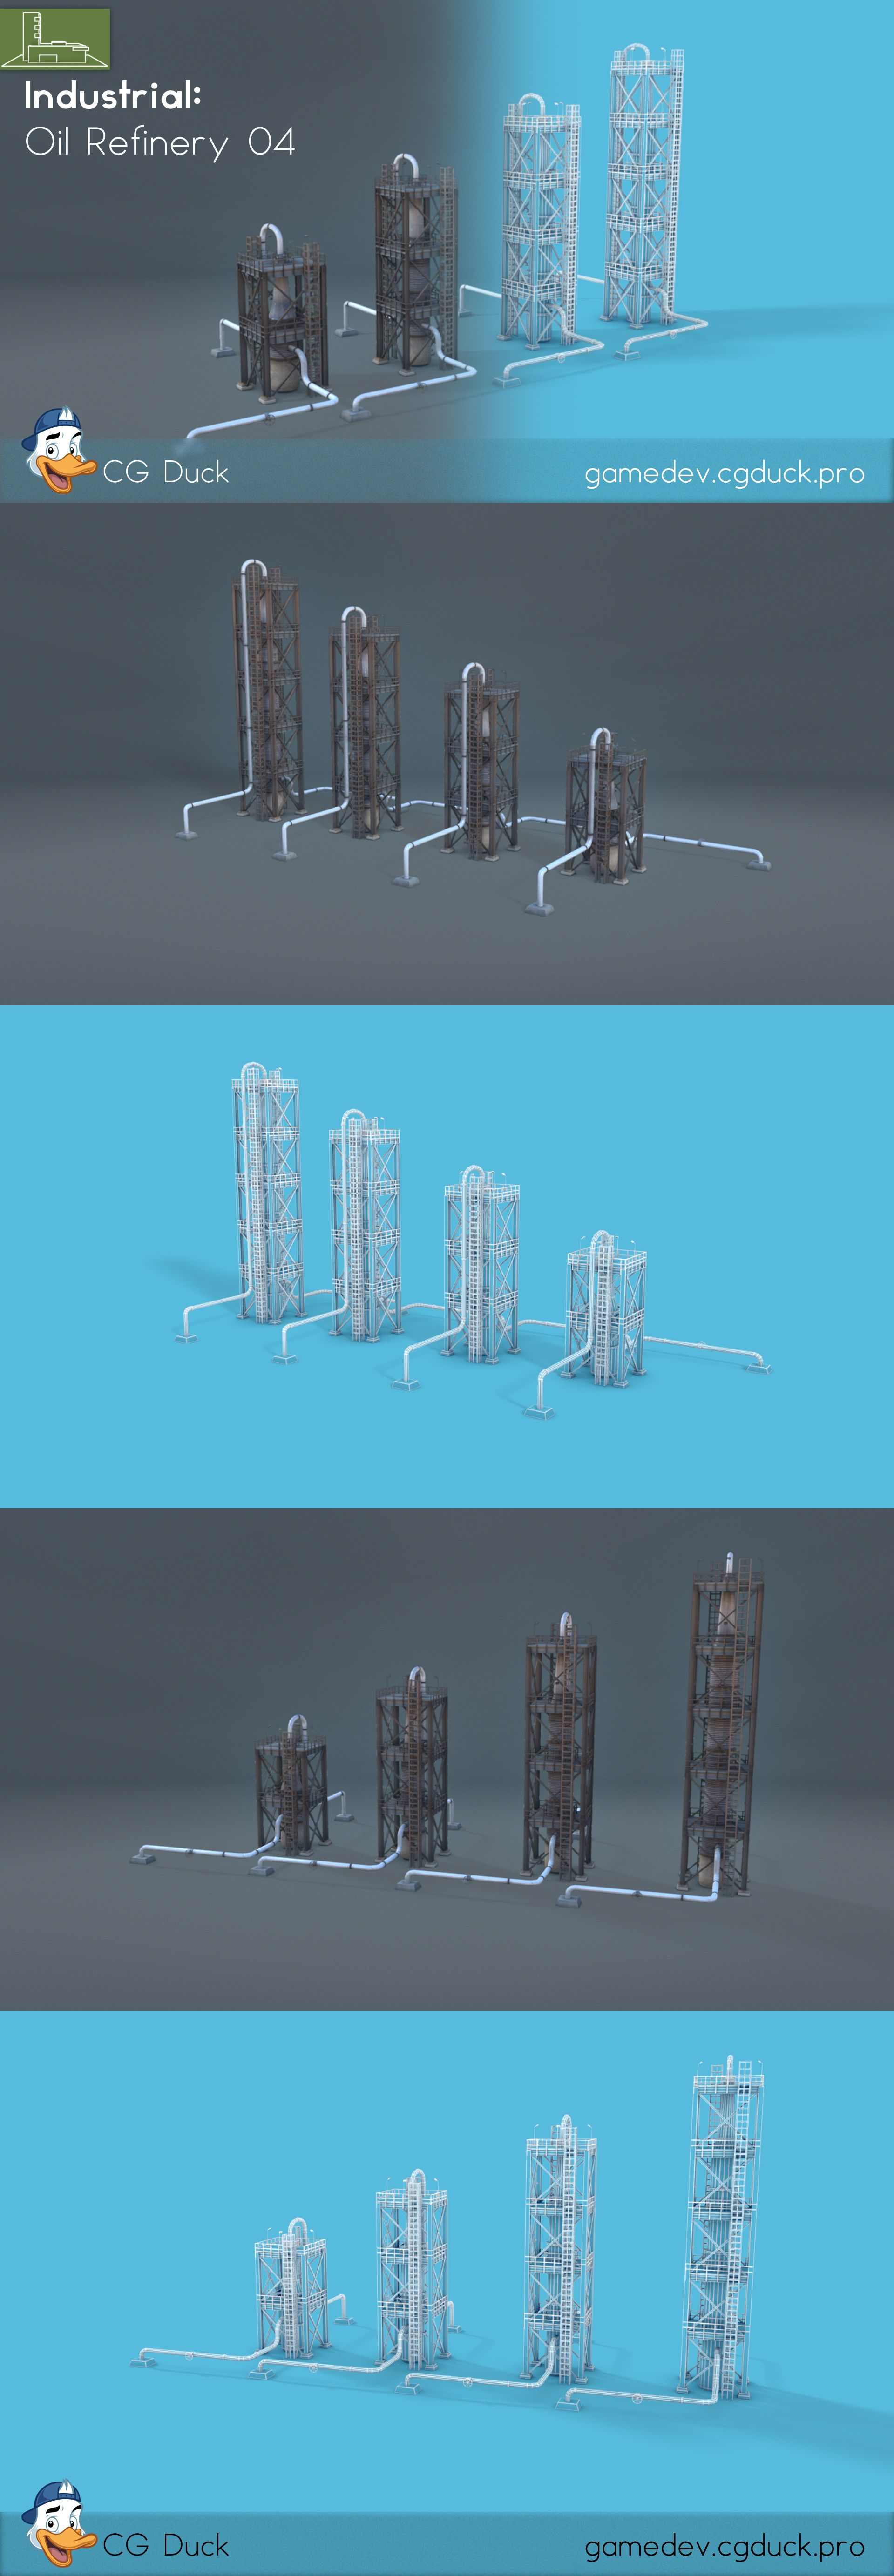 Oil Refinery 04 Oil refinery, Low poly 3d models, Low